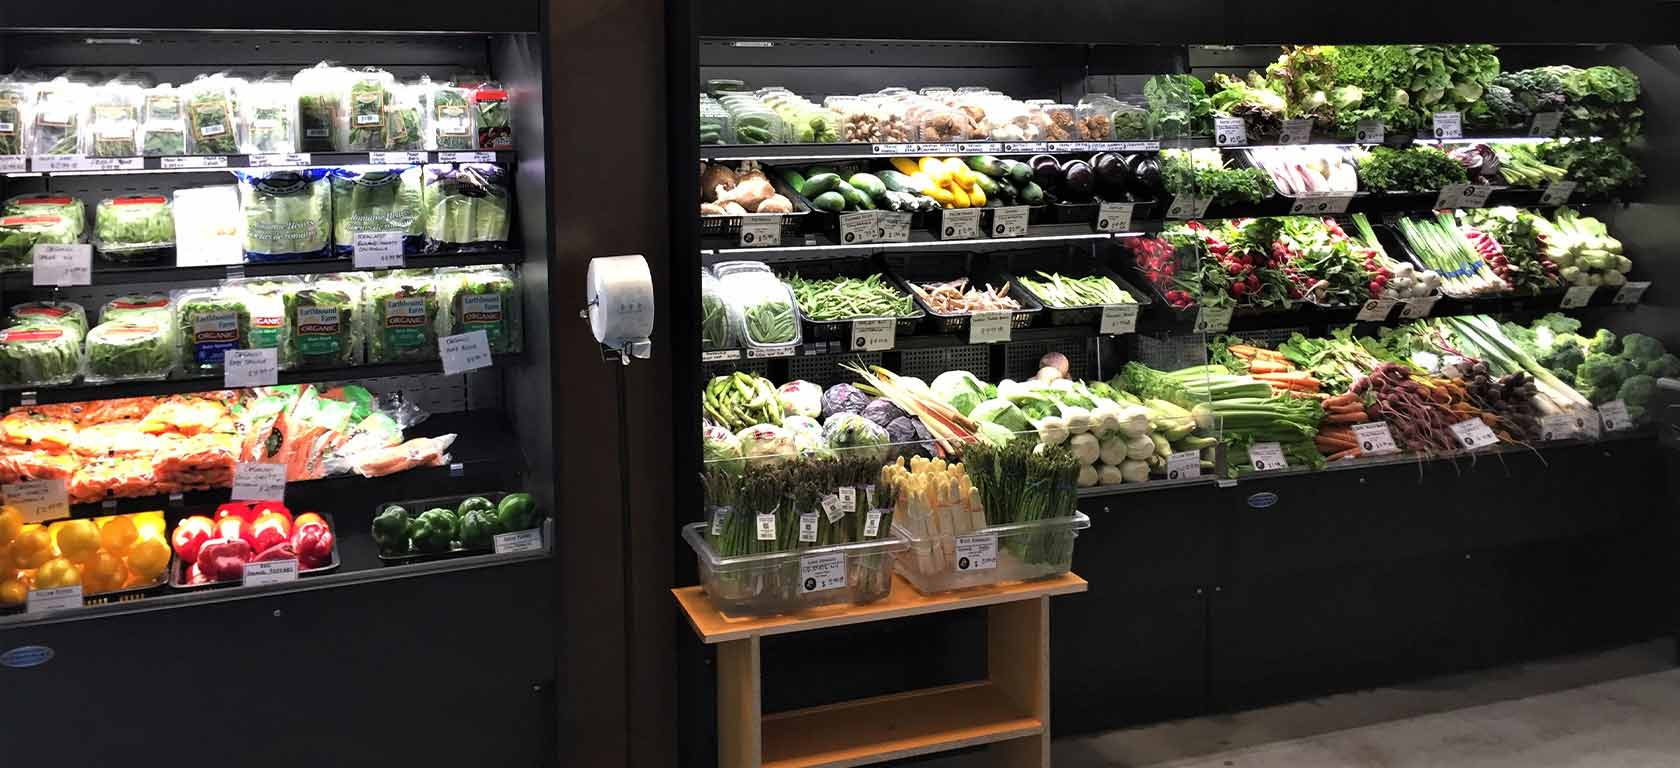 Regrigerated grocery display